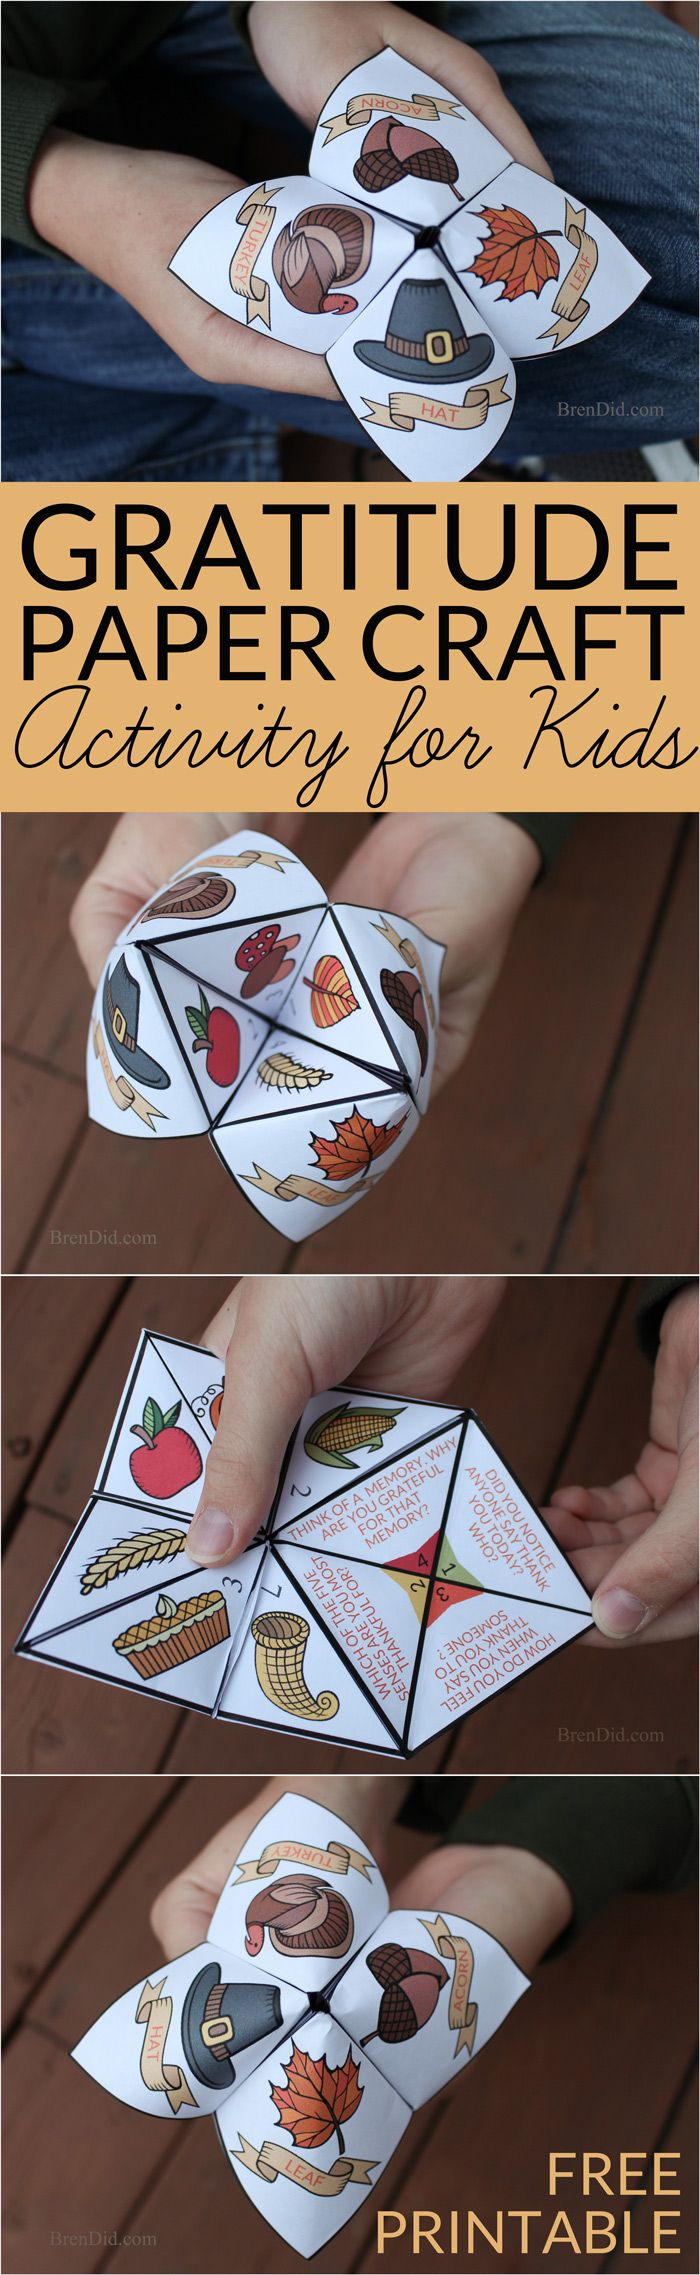 32 best holidays with kids images on pinterest christmas crafts gratitude activity for kids thanksgiving cootie catcher jeuxipadfo Images